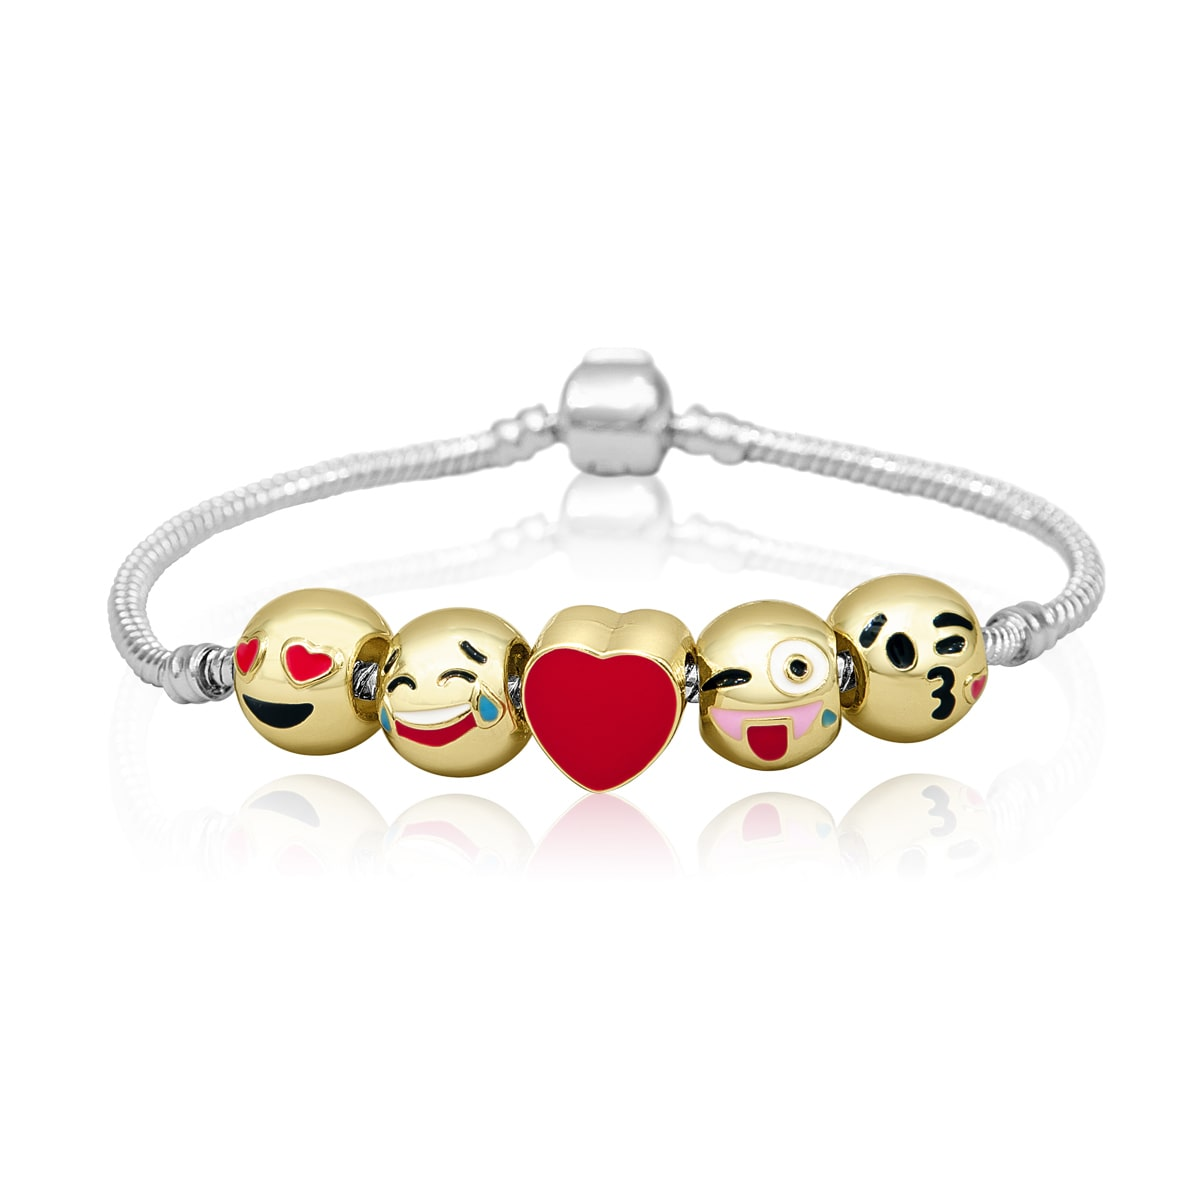 18K Gold Plated Emoji Charm Bracelet 5 Charms Total!